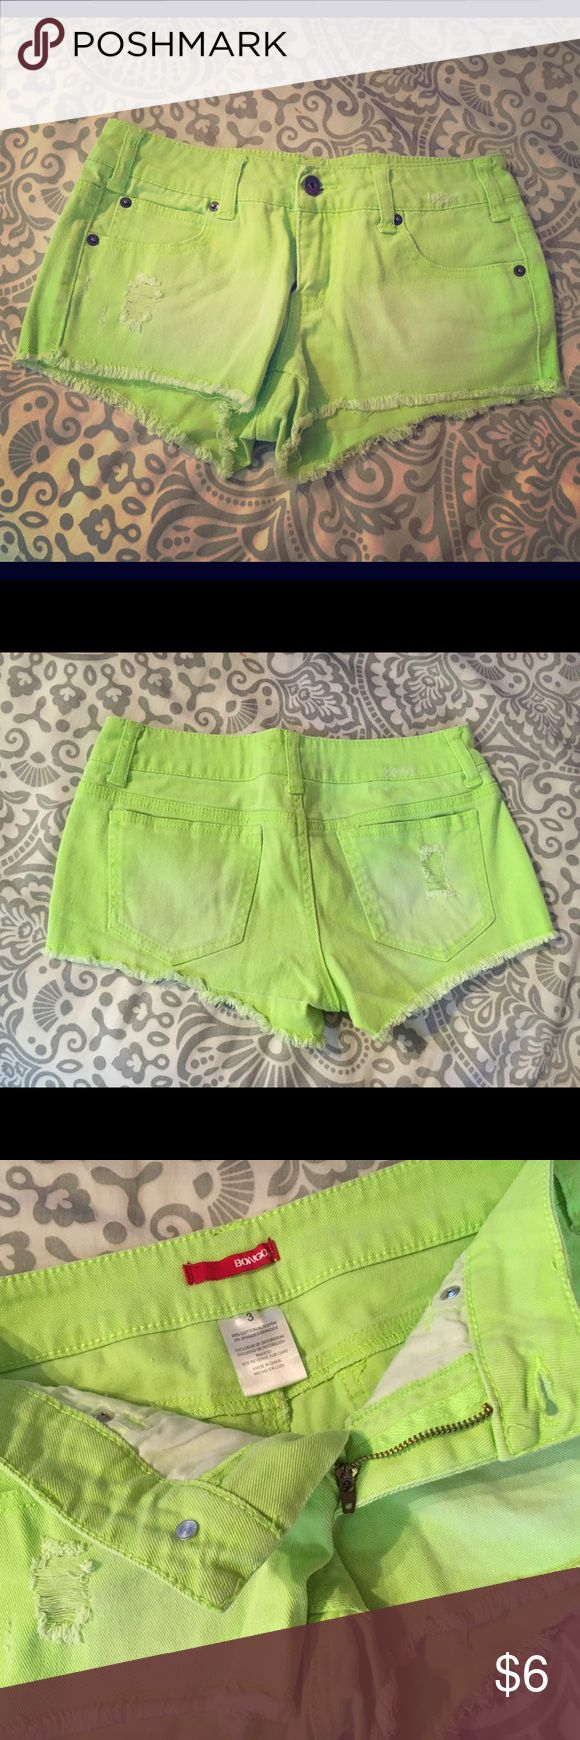 Slightly distressed neon green jean shorts, size 3 Neon green shorts with small distressing. Size 3, runs true to size. Only worn once. BONGO Shorts Jean Shorts